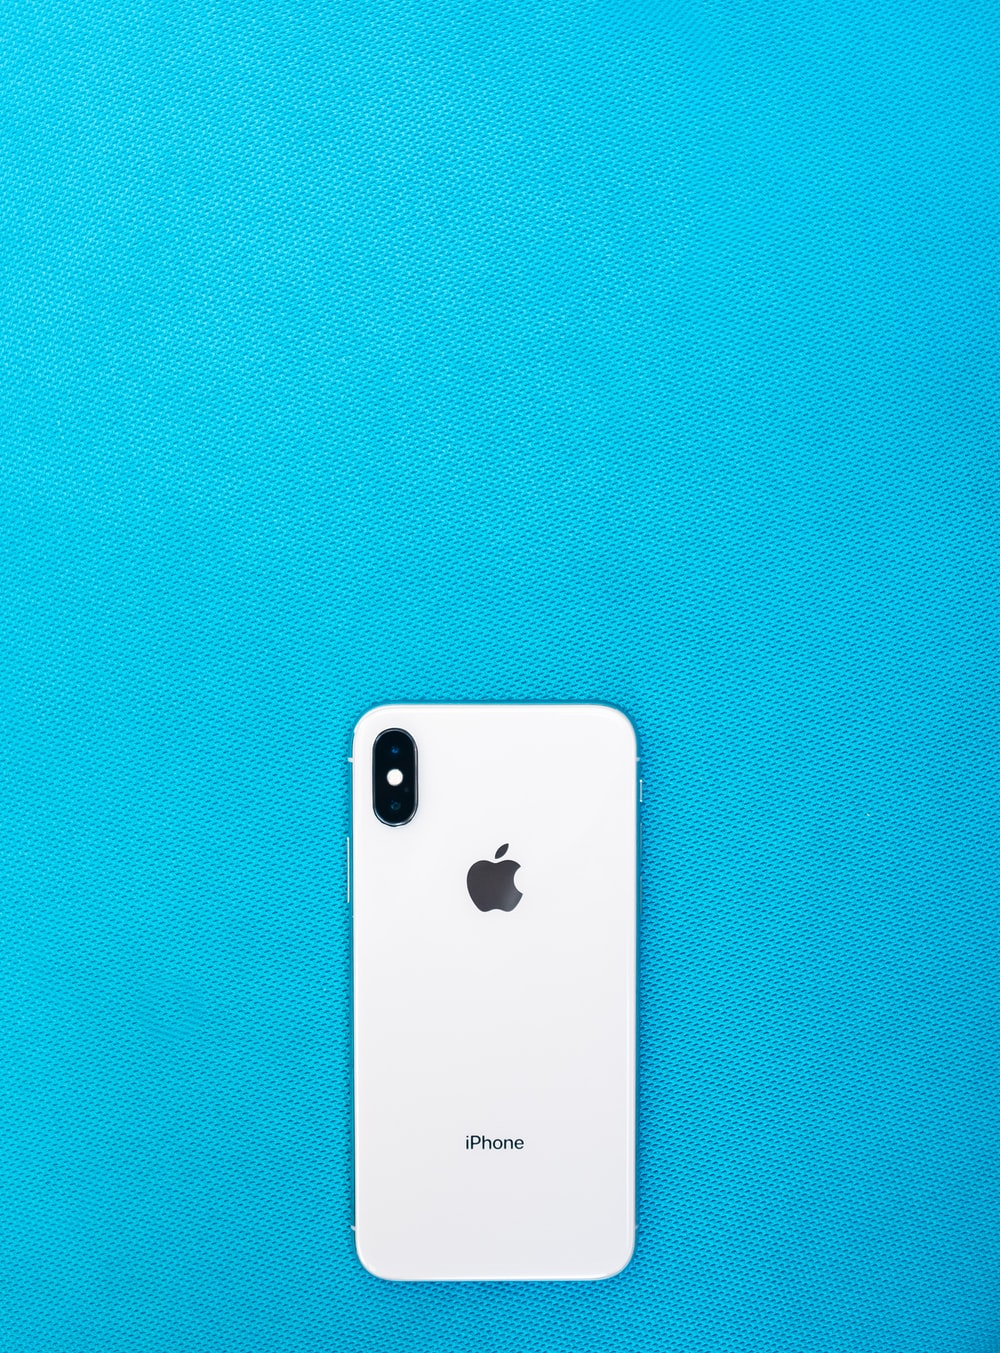 post-2017 iPhone on teal surface